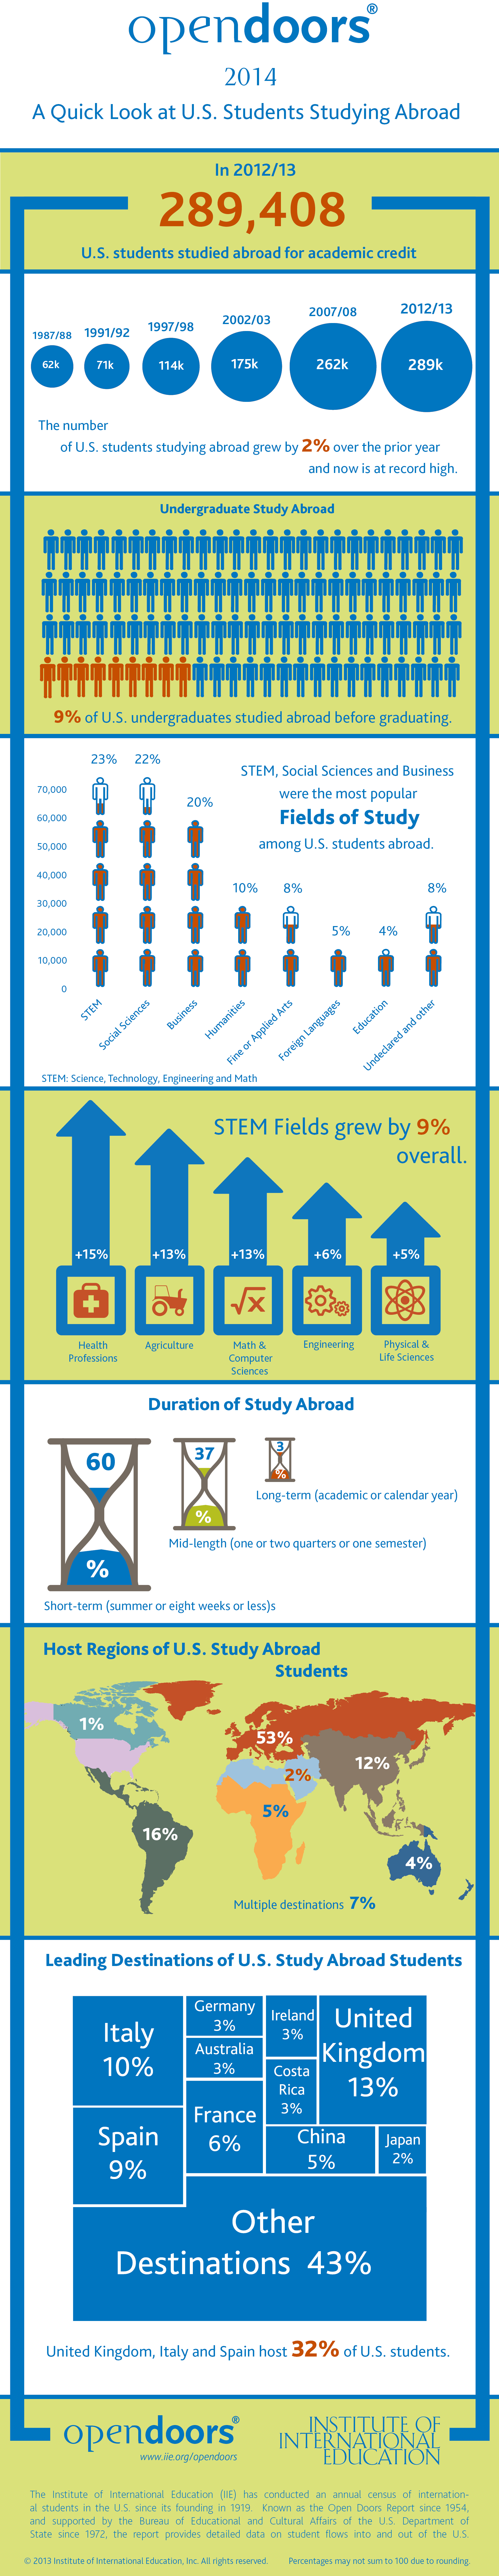 us-students-studying-abroad-infographic